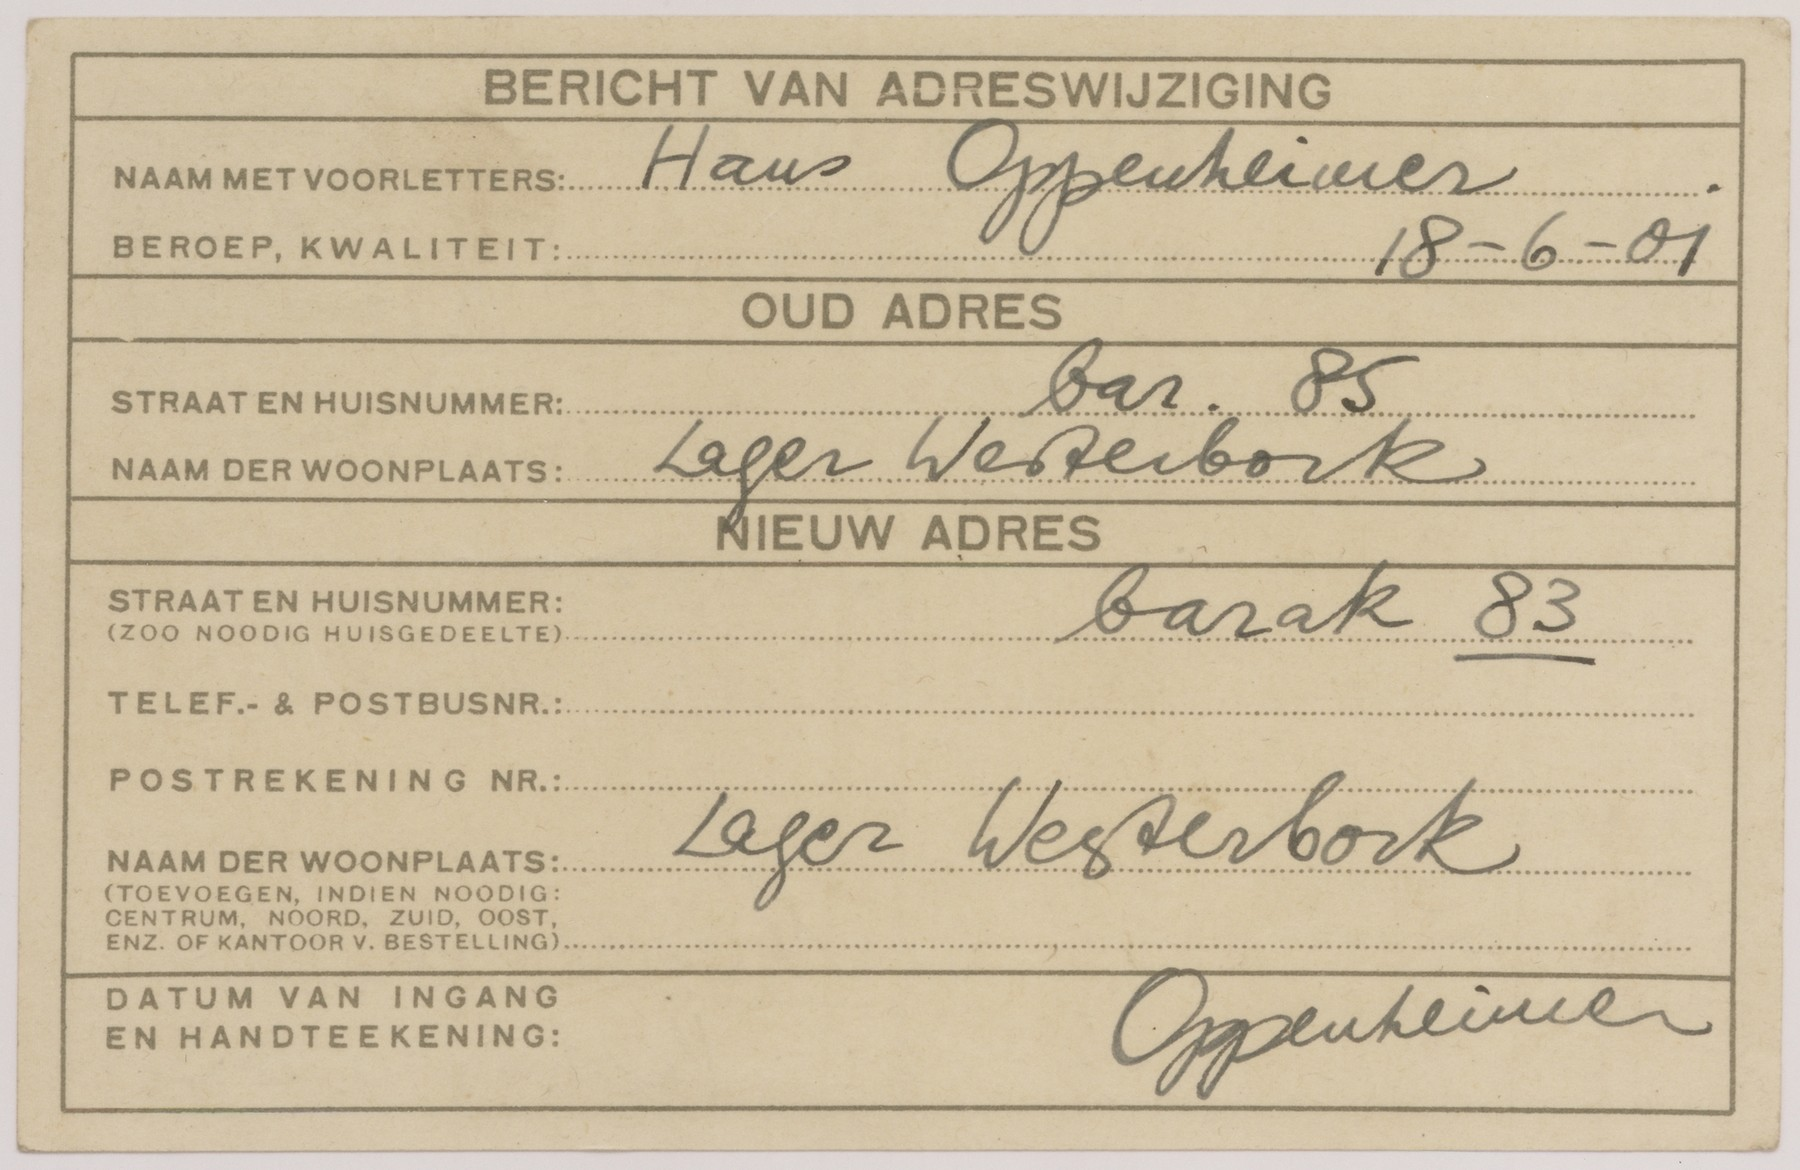 Postcard sent from Hans Oppenheimer to notify a change in barracks in the Westerbork transit camp.